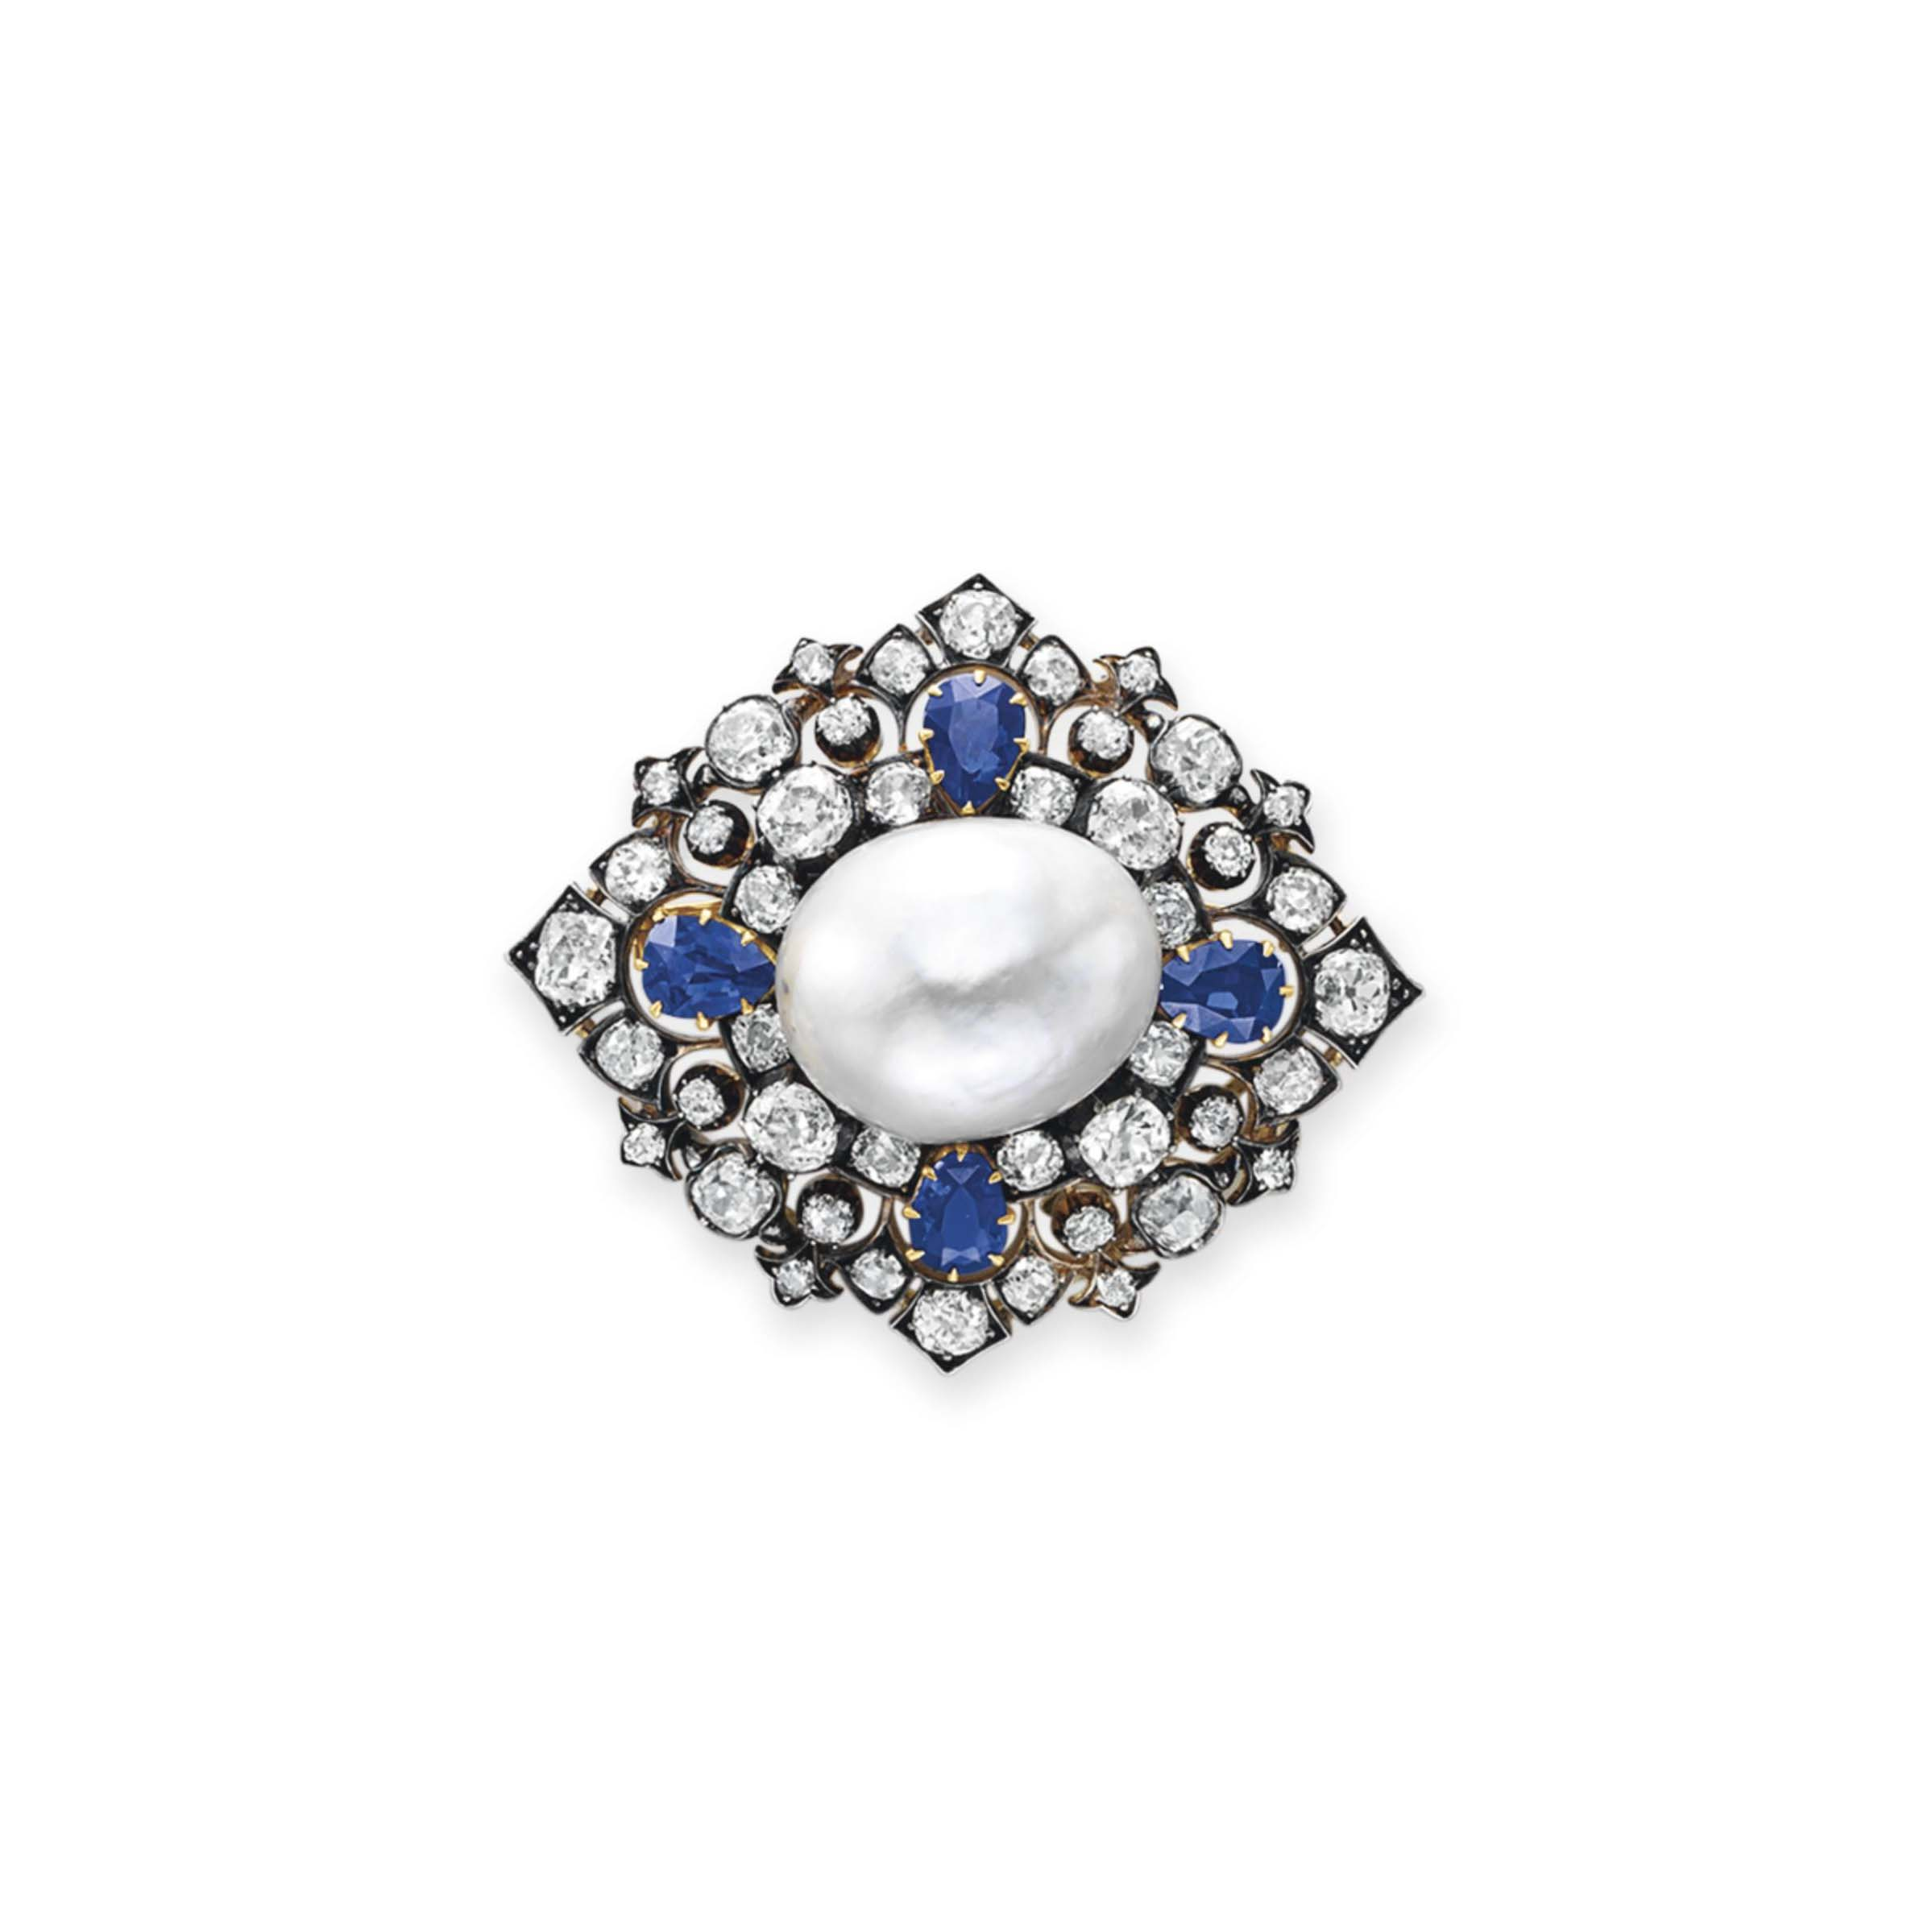 AN ANTIQUE DIAMOND, SAPPHIRE AND NATURAL PEARL BROOCH